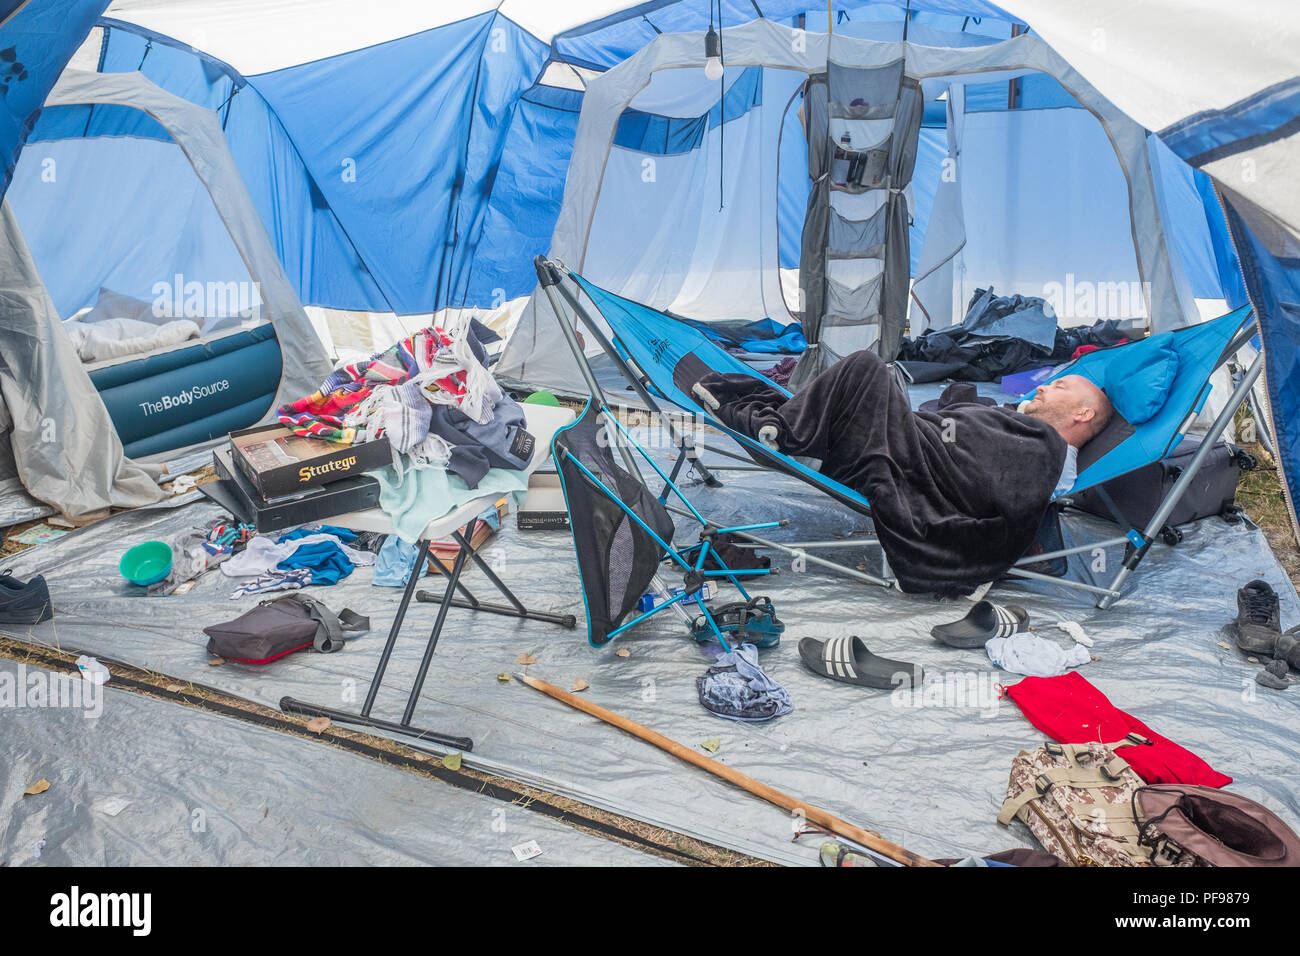 Man sleeps on a camp bed in an untidy interior of a large tent, with clothes, chairs, and equipment strewn all over the place. - Stock Image